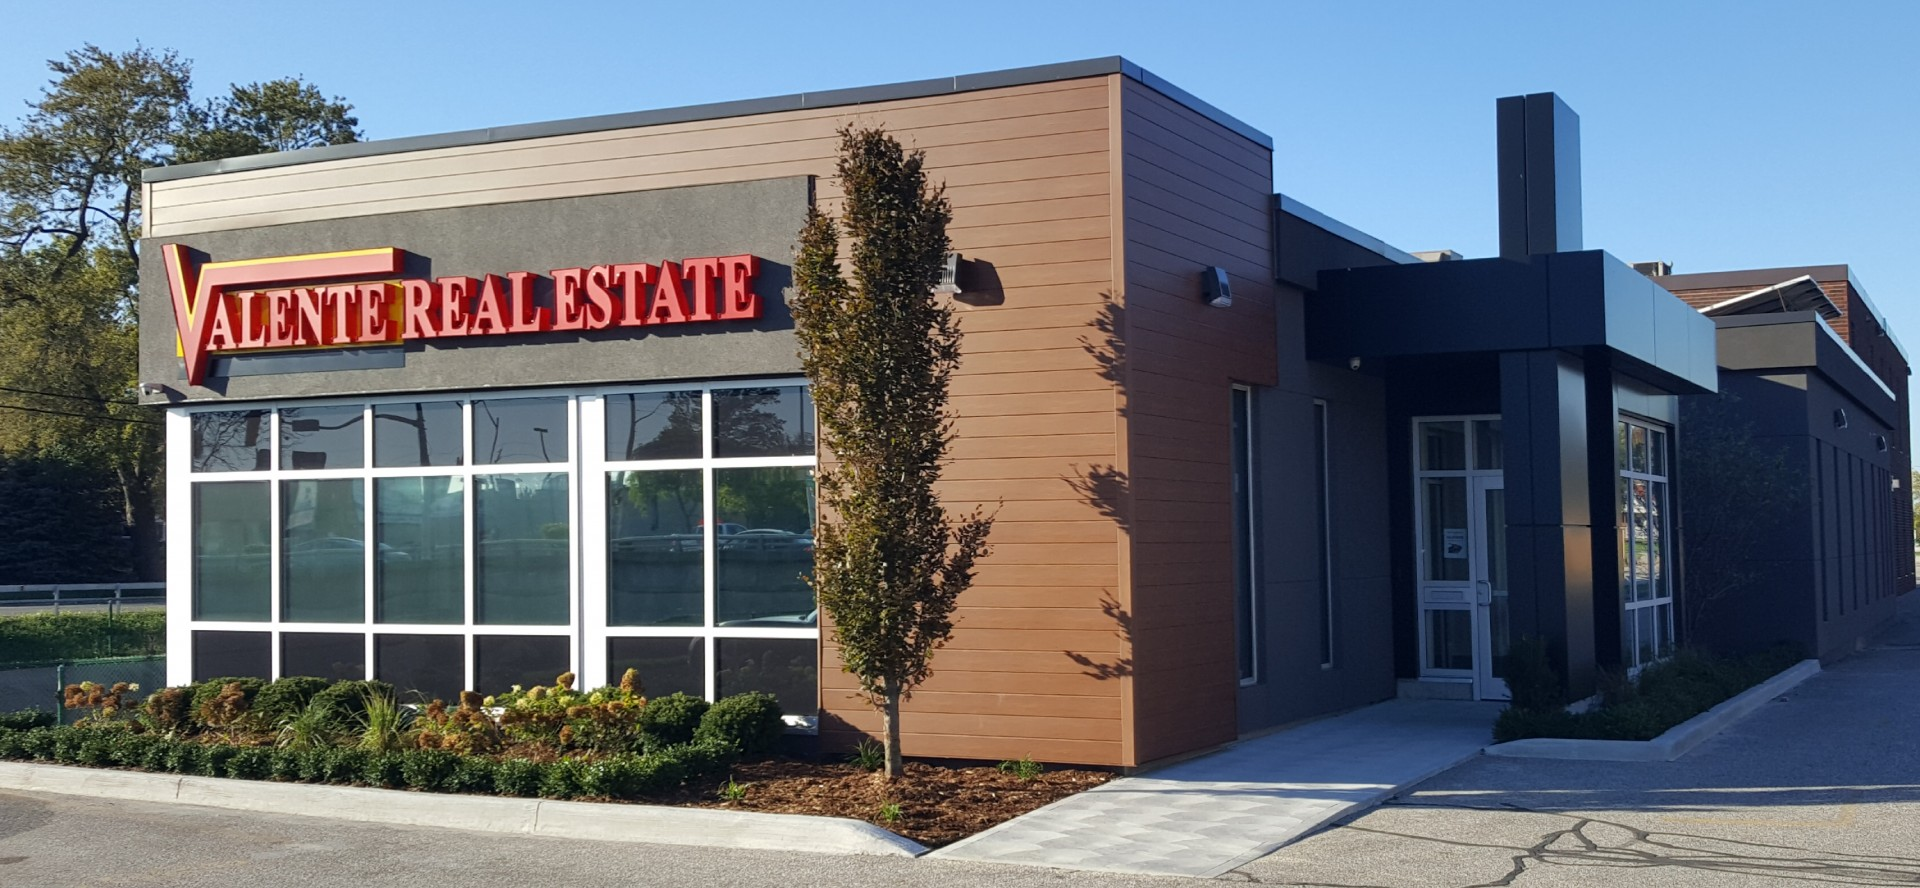 New Look For Valente Real Estate Office